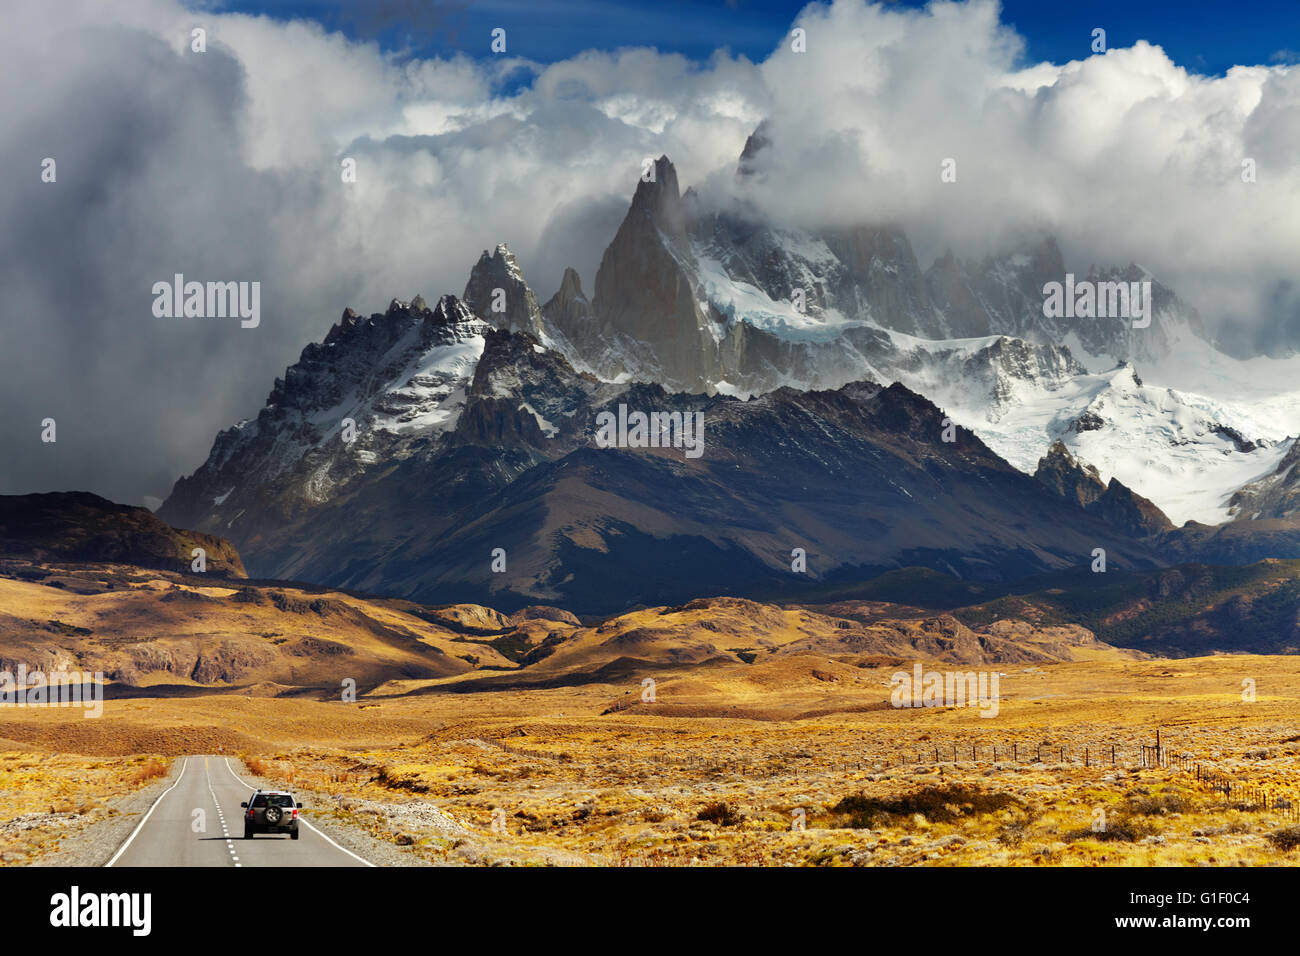 Mount Fitz Roy in the clouds, road to Los Glaciares National Park, Patagonia, Argentina - Stock Image